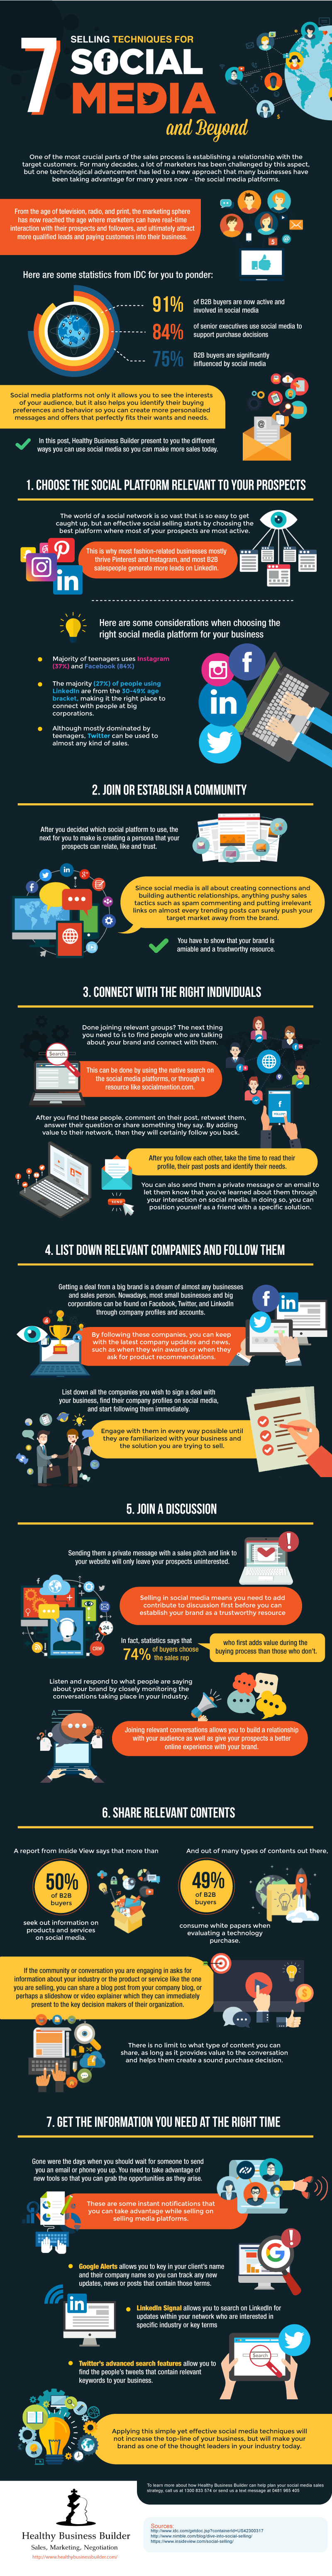 7 Selling Techniques for Social Media [Infographic] | Social Media Today